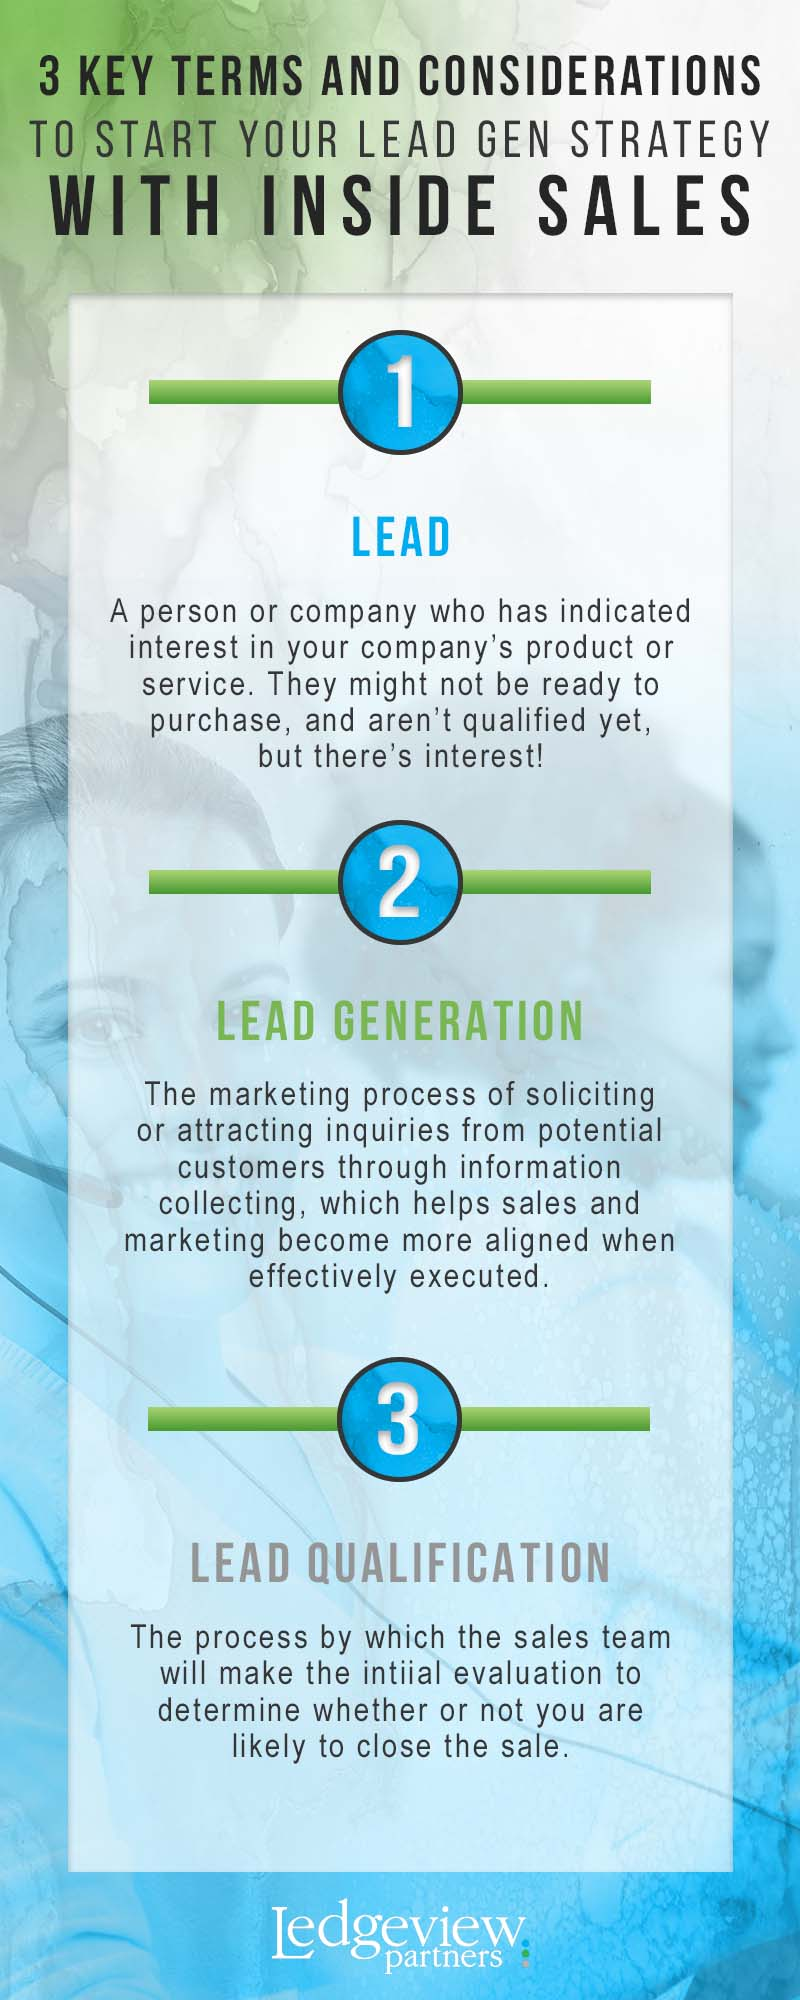 3 Key Terms and Considerations to Start Your Lead Gen Strategy